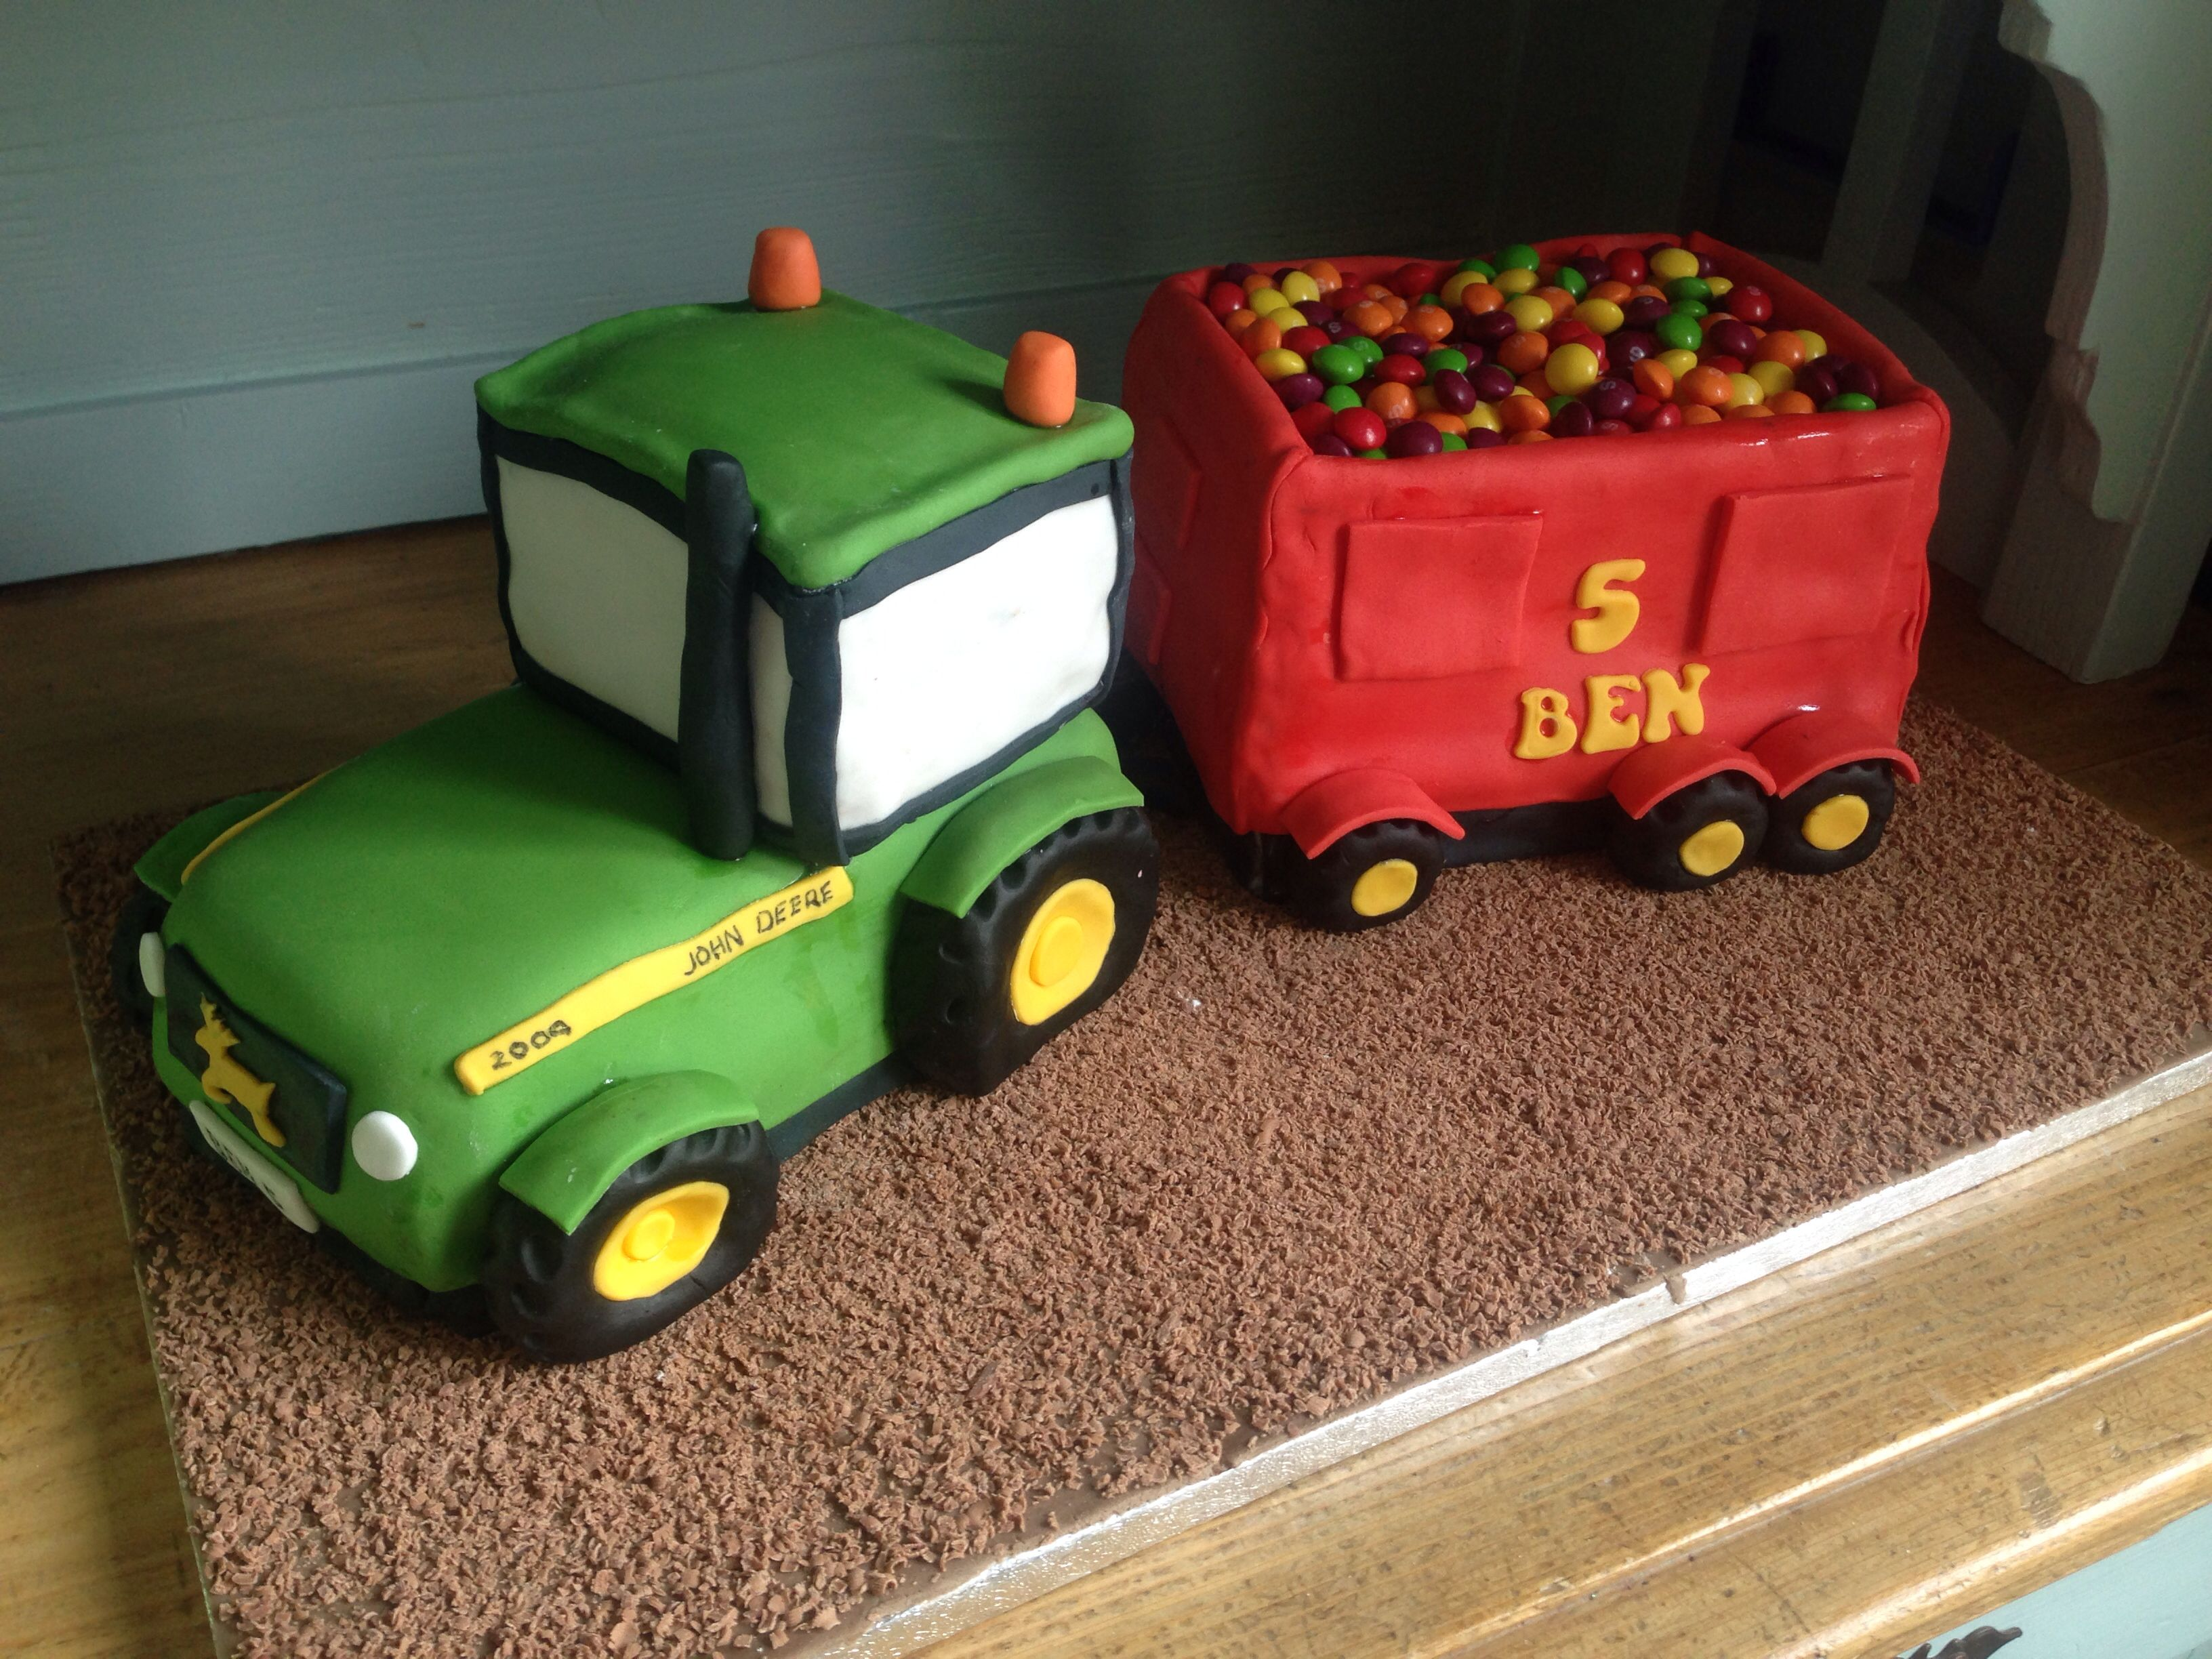 John Deere tractor and trailer cake. Red velvet and chocolate! Yummy 5 year old